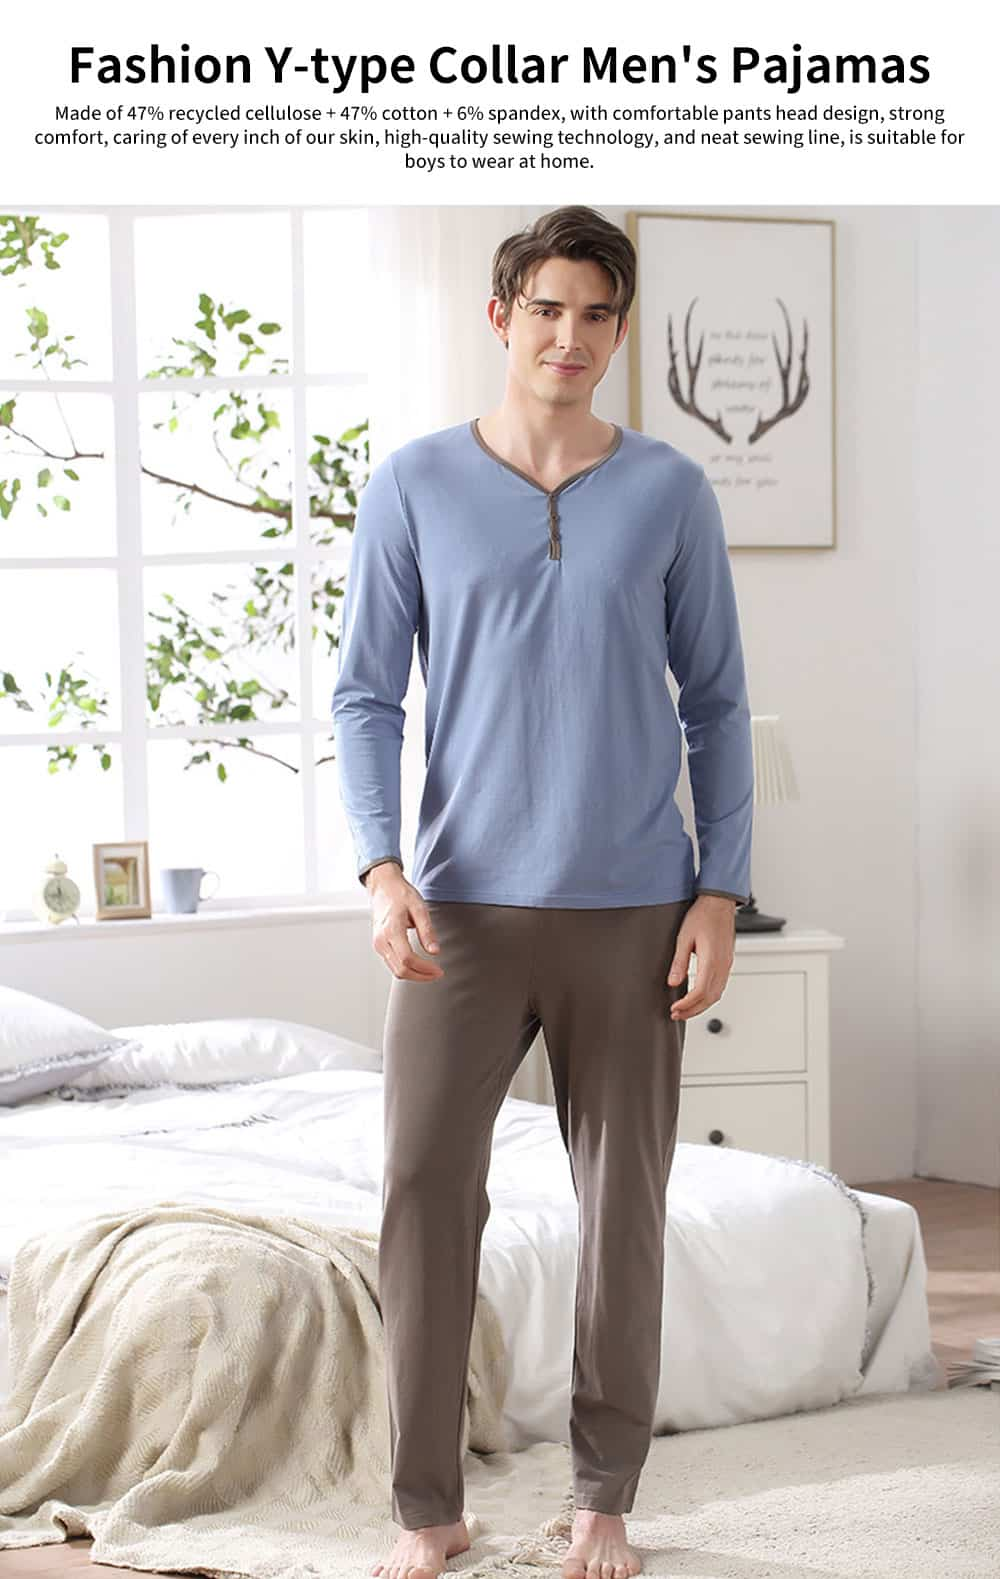 Fashion Y-type Collar Men's Cotton Long-sleeved Pajamas, Contrast Color Comfortable Knit Tracksuit 0